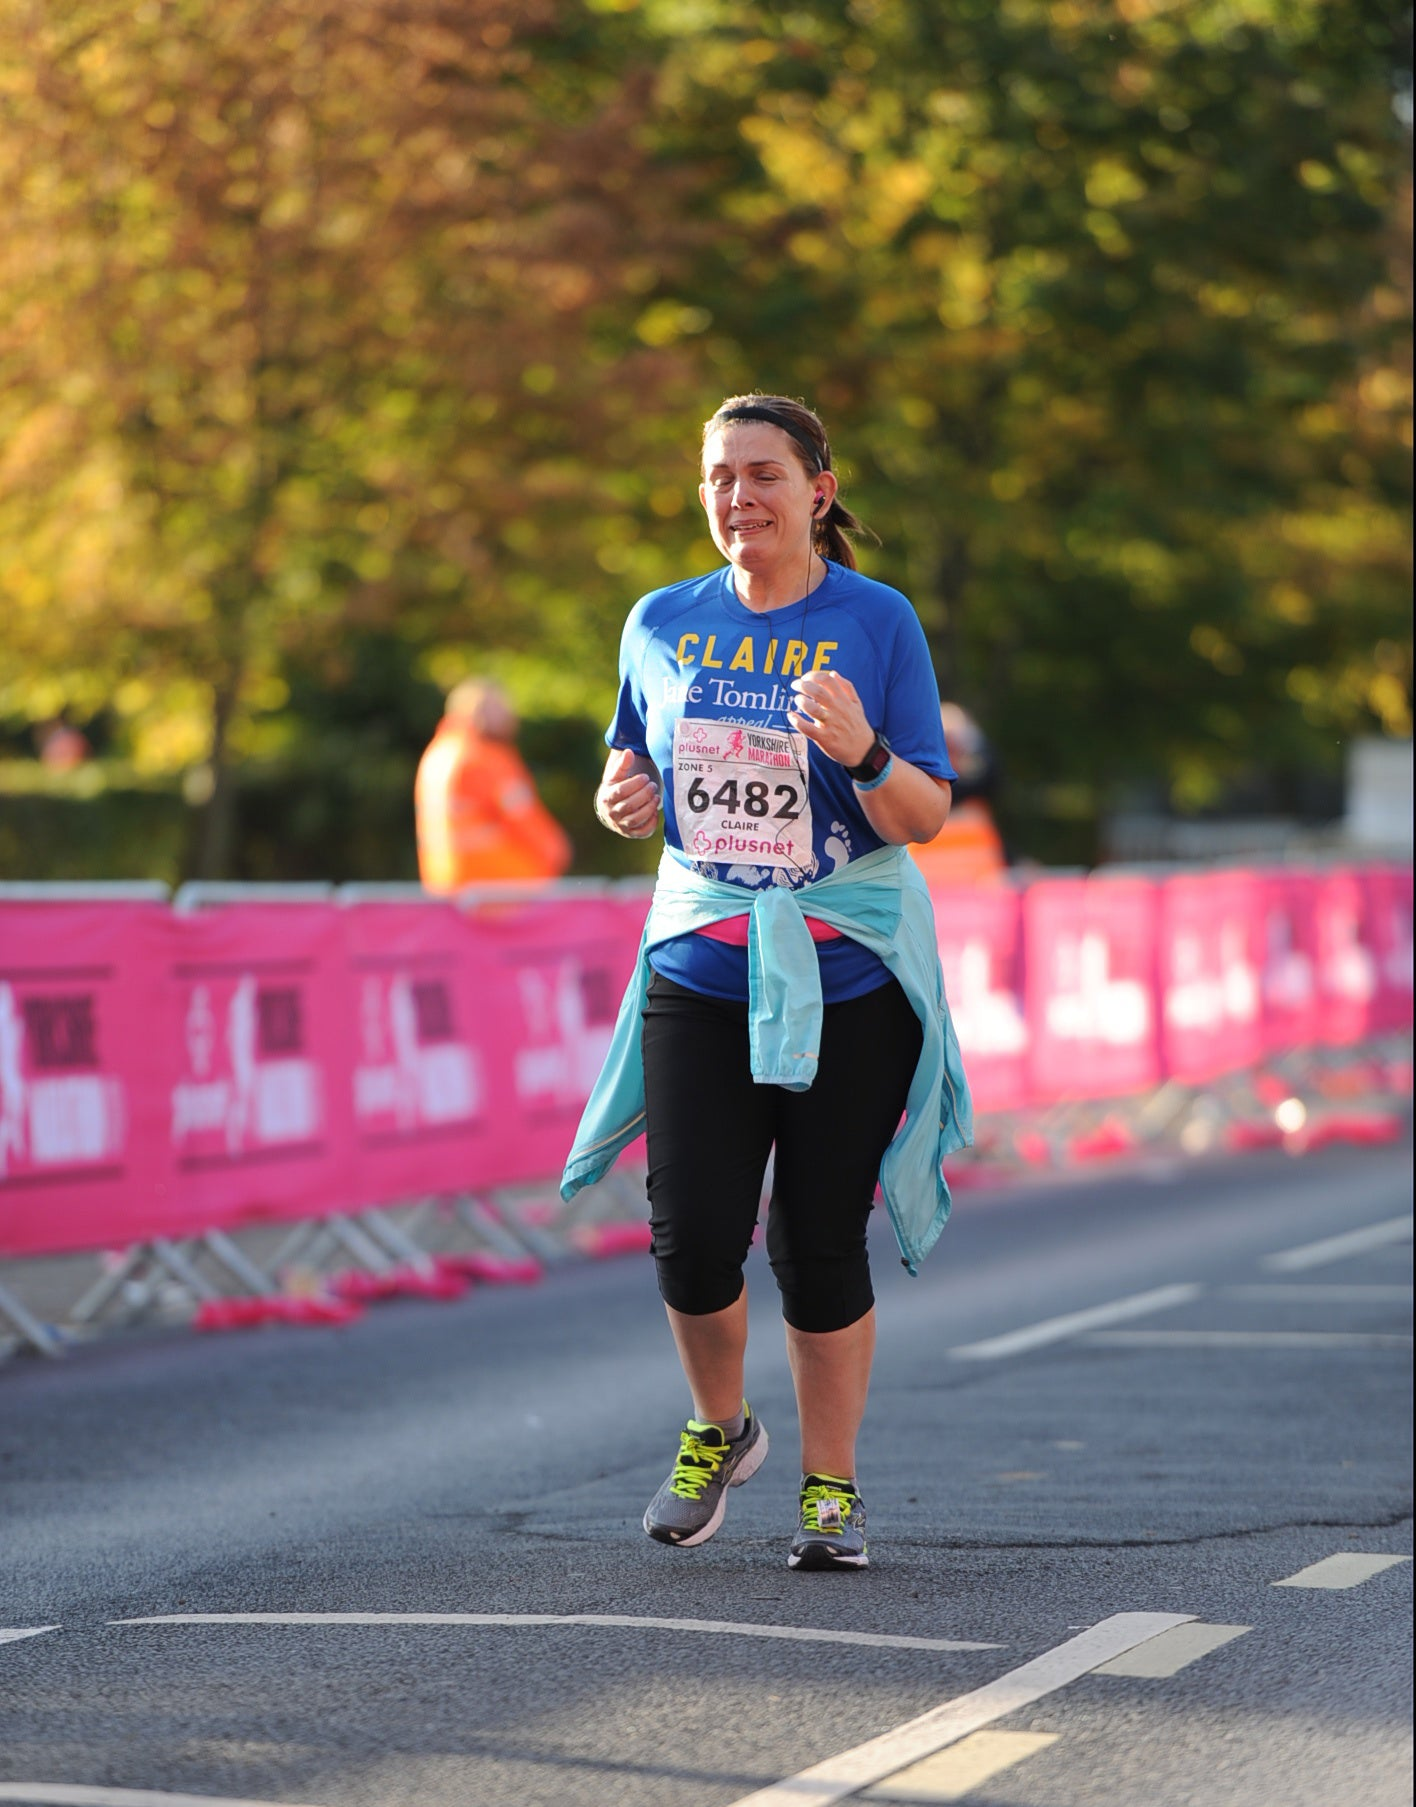 A woman running in the autumn sunshine, with race boards at the side of the road. She is crying.